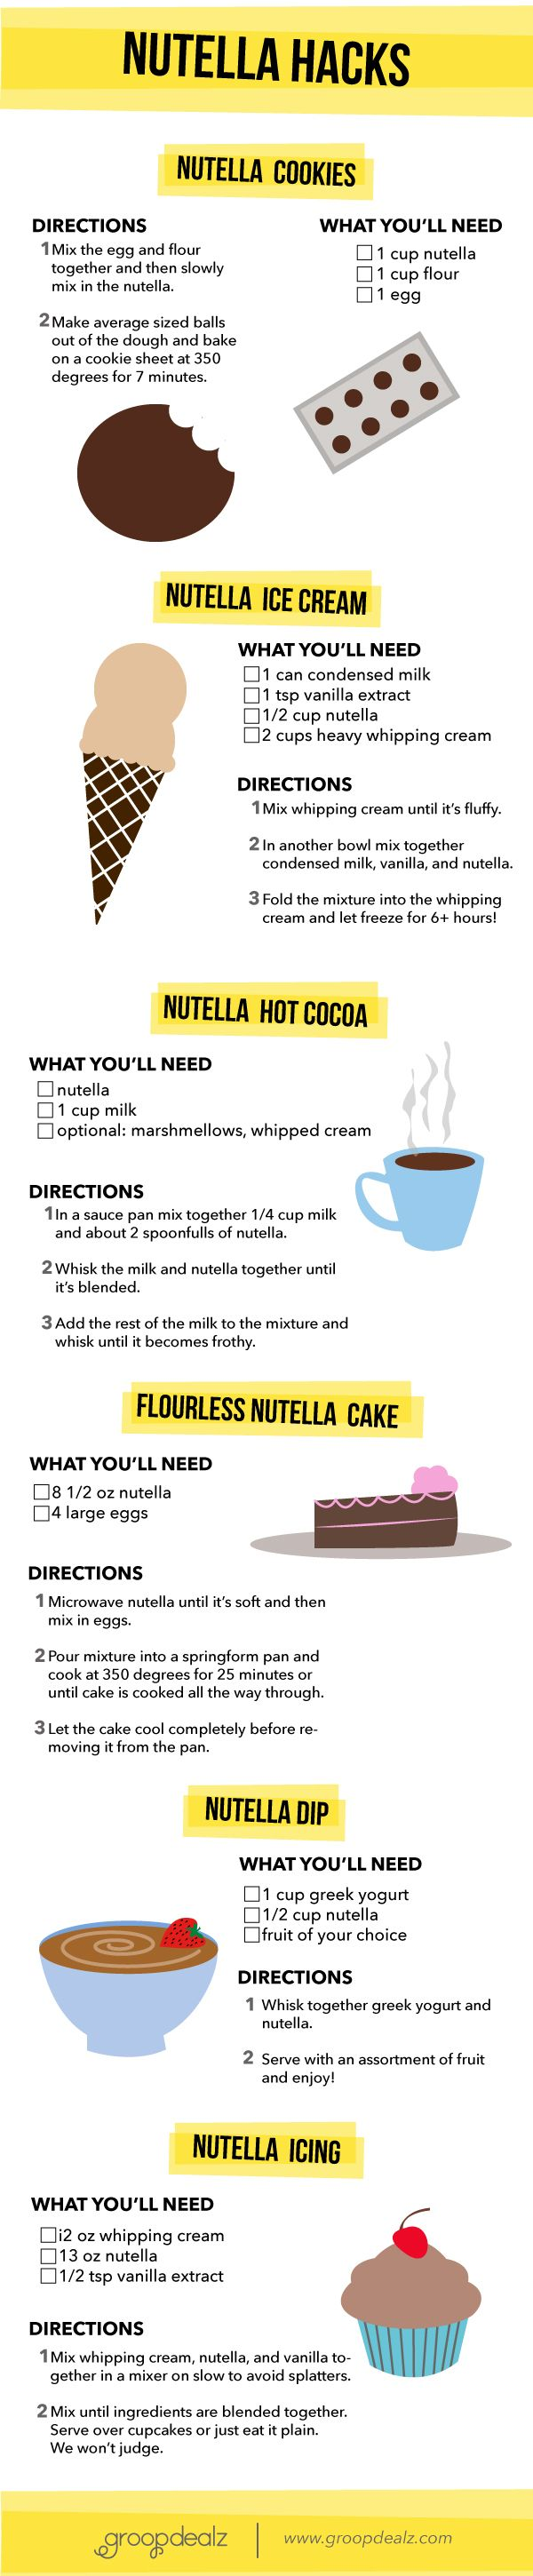 Nutella Hacks and Recipes                                                                                                                                                                                 More